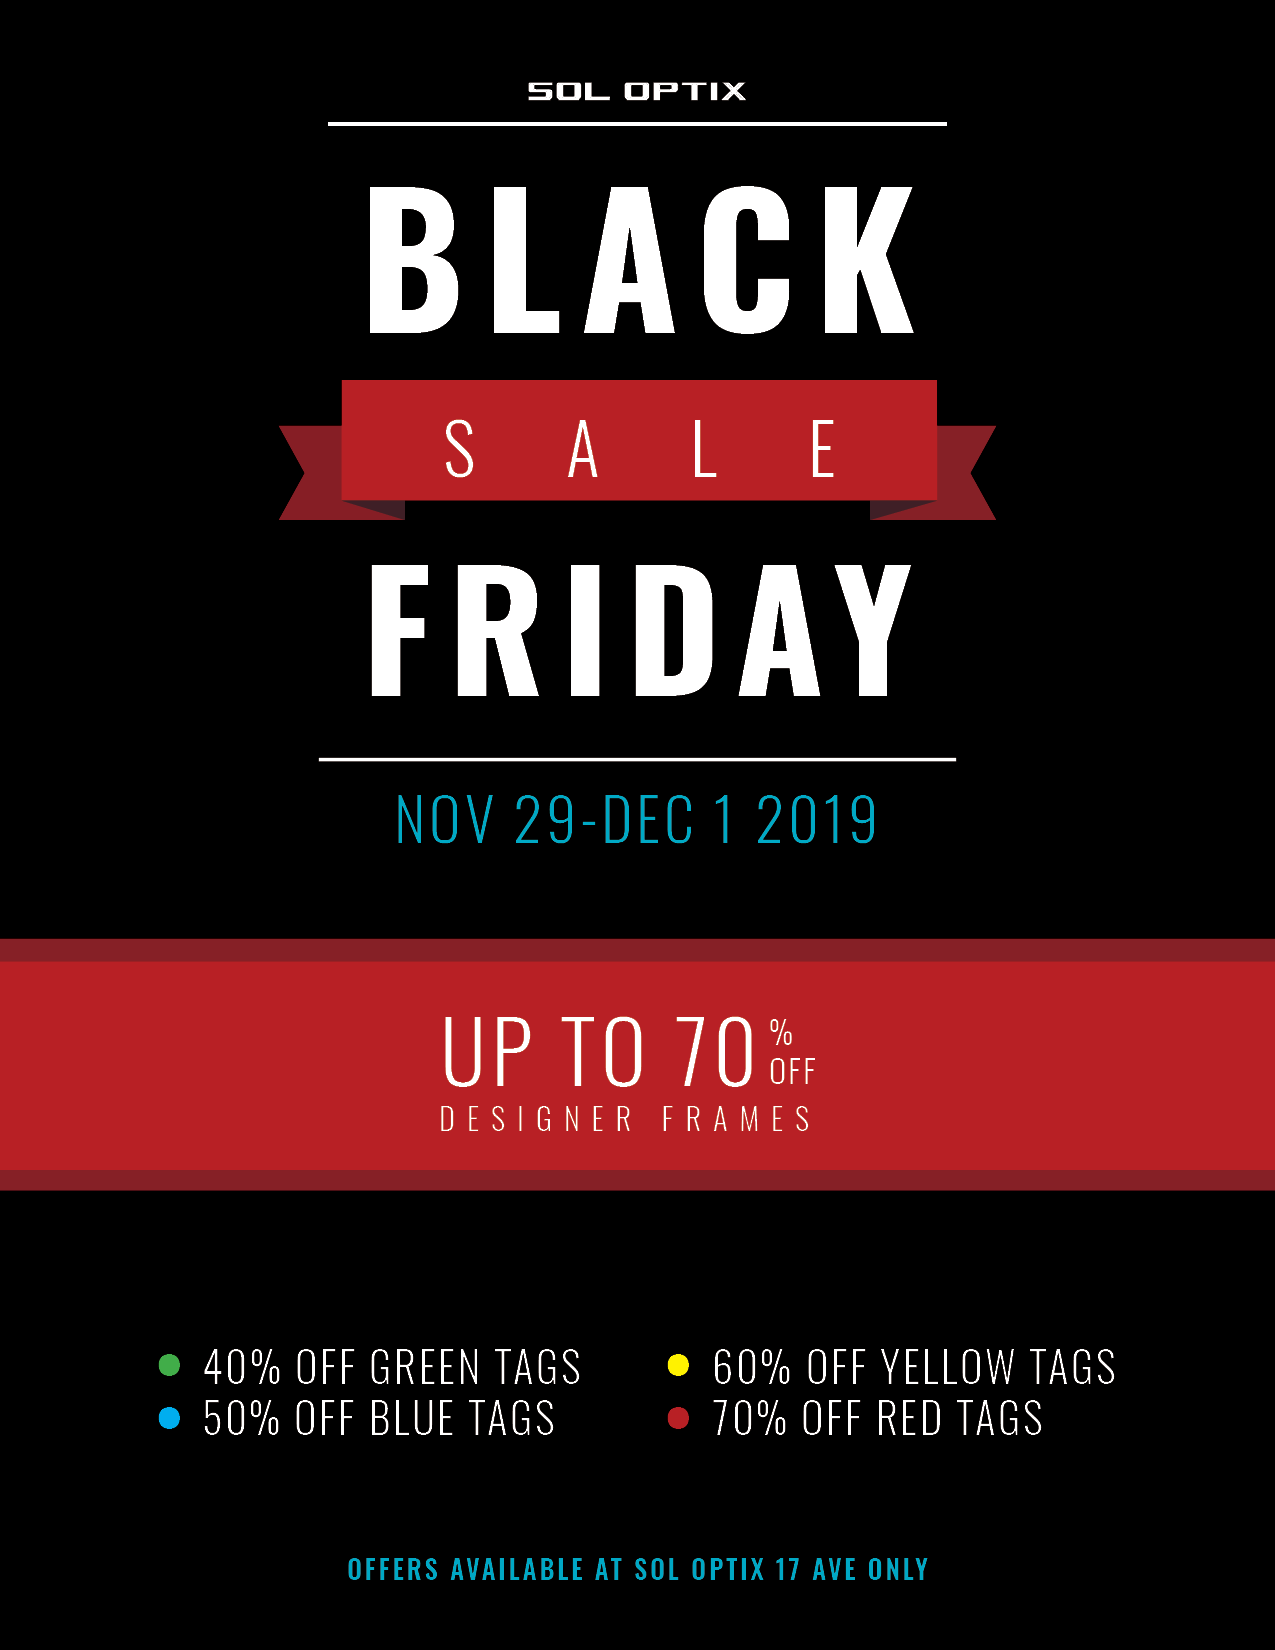 Promotional image of Black Friday Sale 2019 for designer eyeglasses and sunglasses.